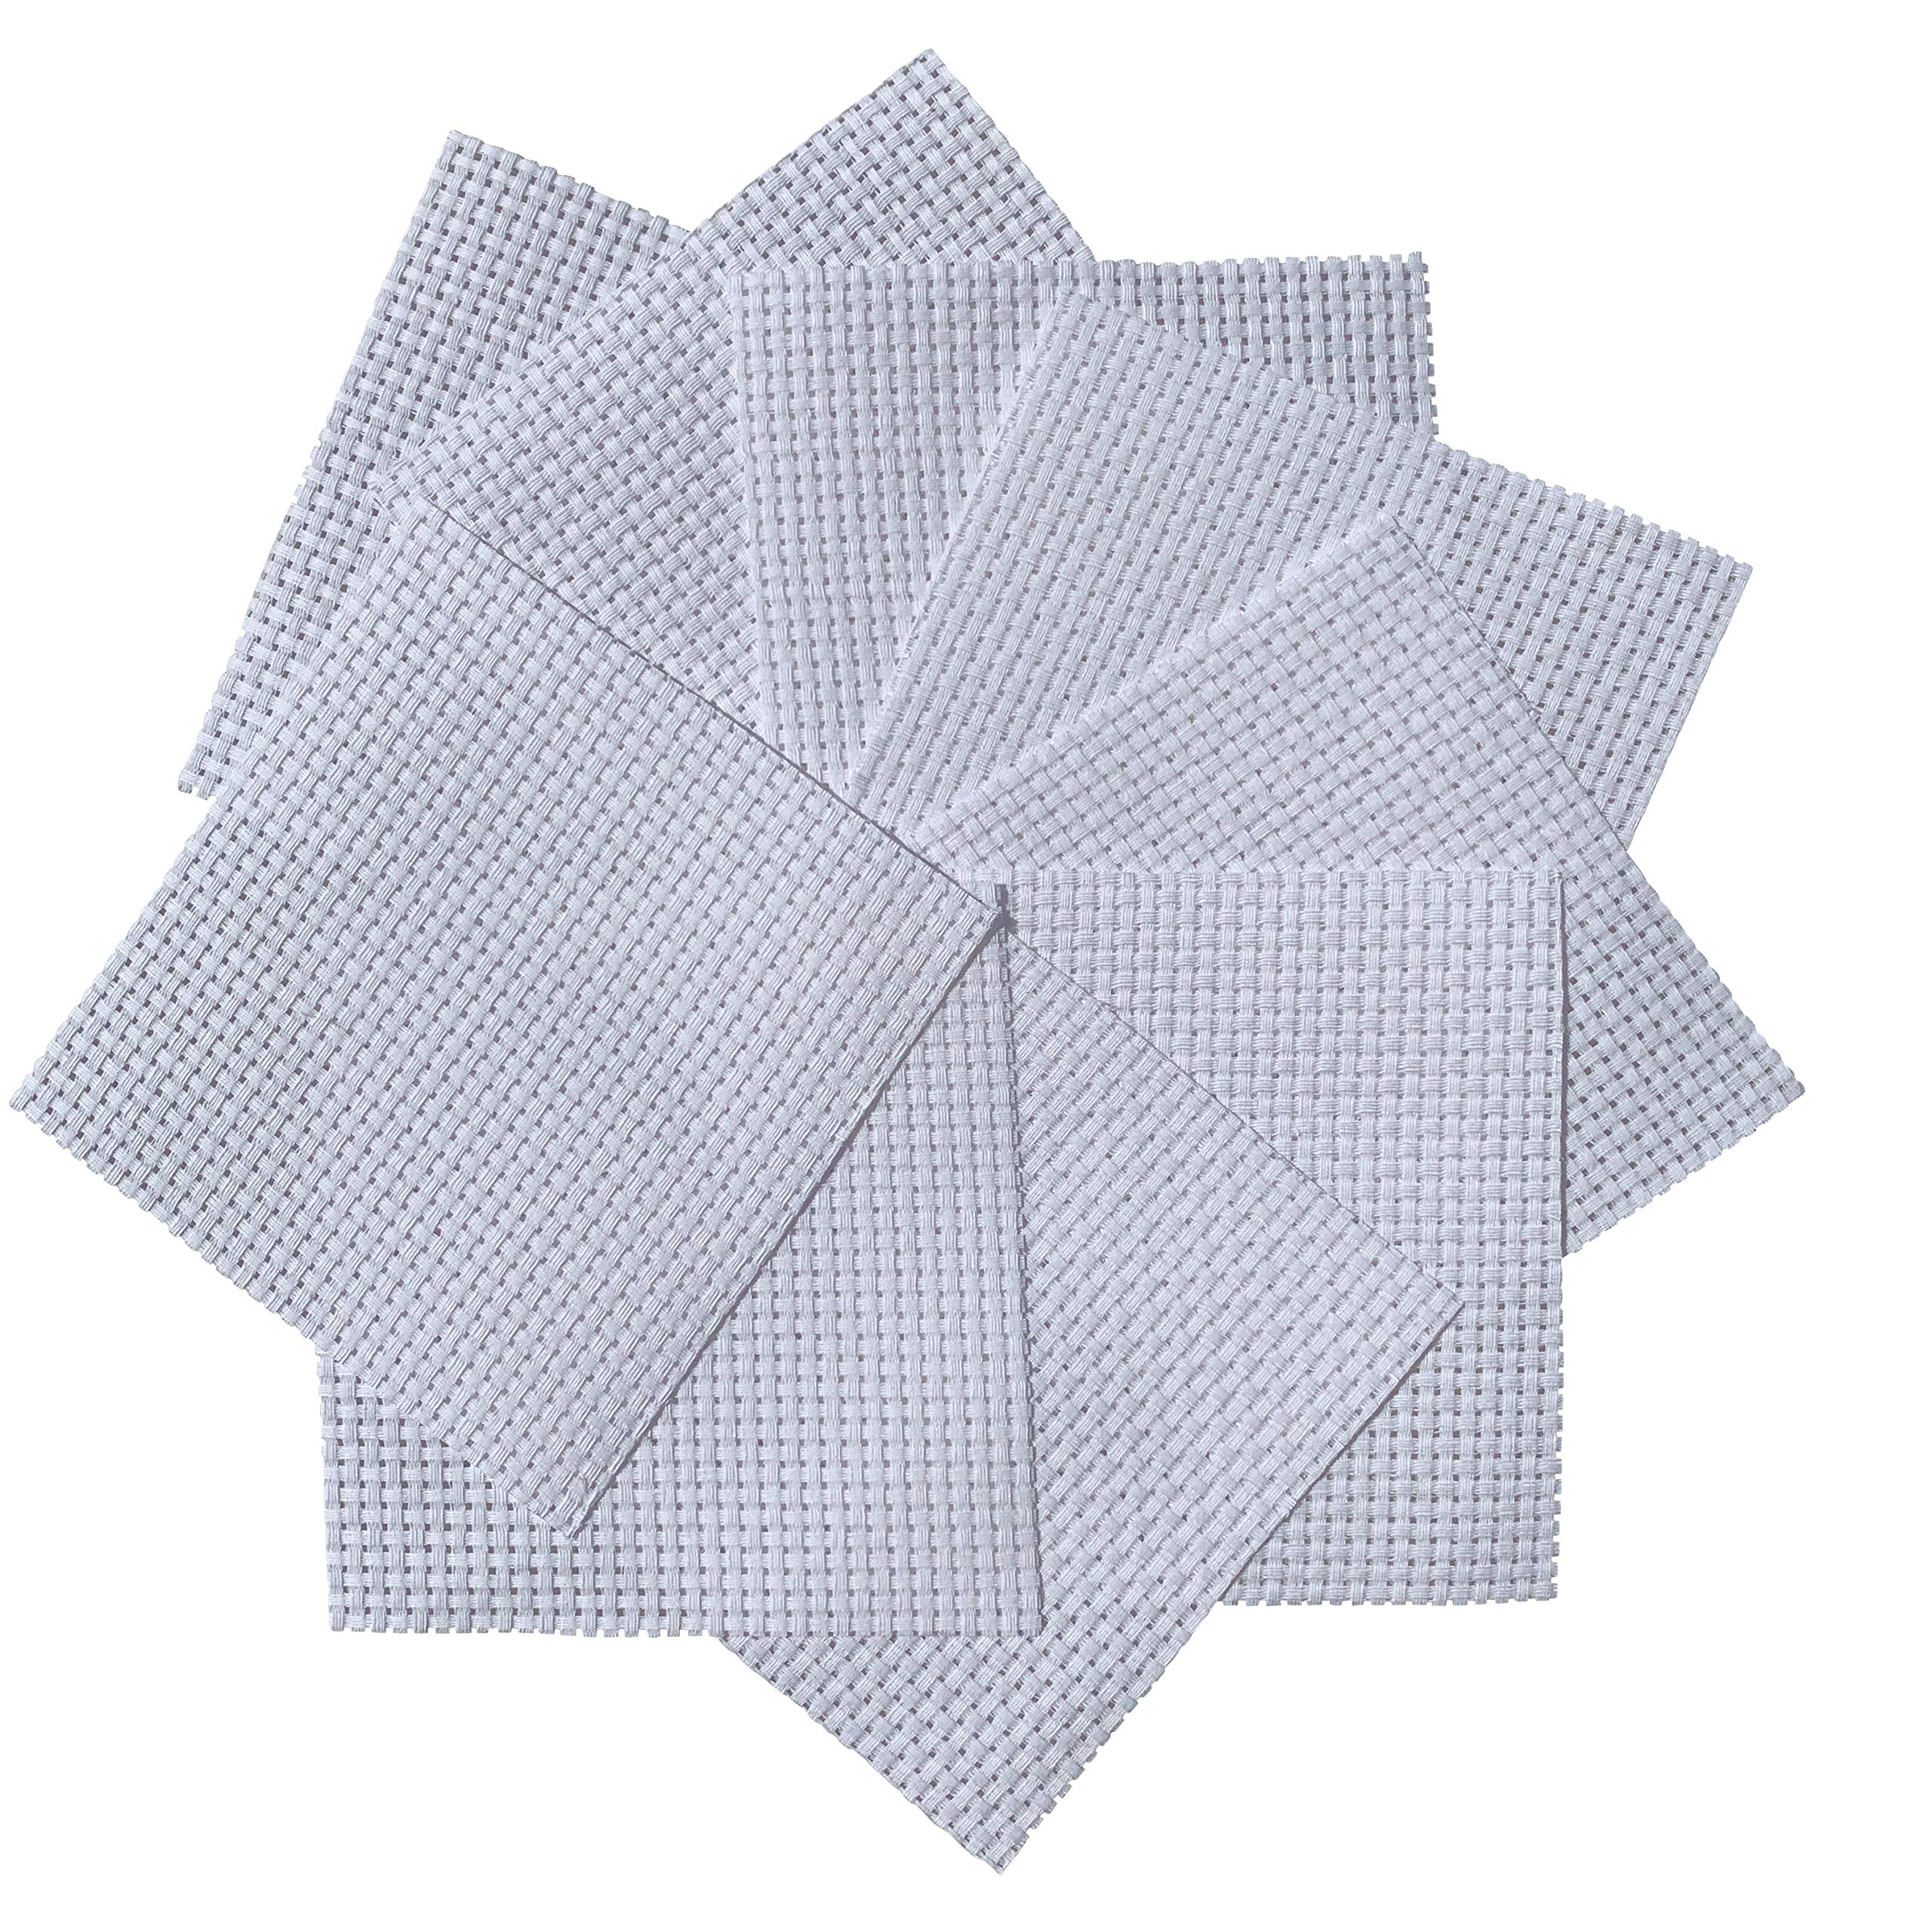 White Binca Squares (Pack of 10) 6-Count Cross Stitch Fabric - 100% Cotton - 15x15cm